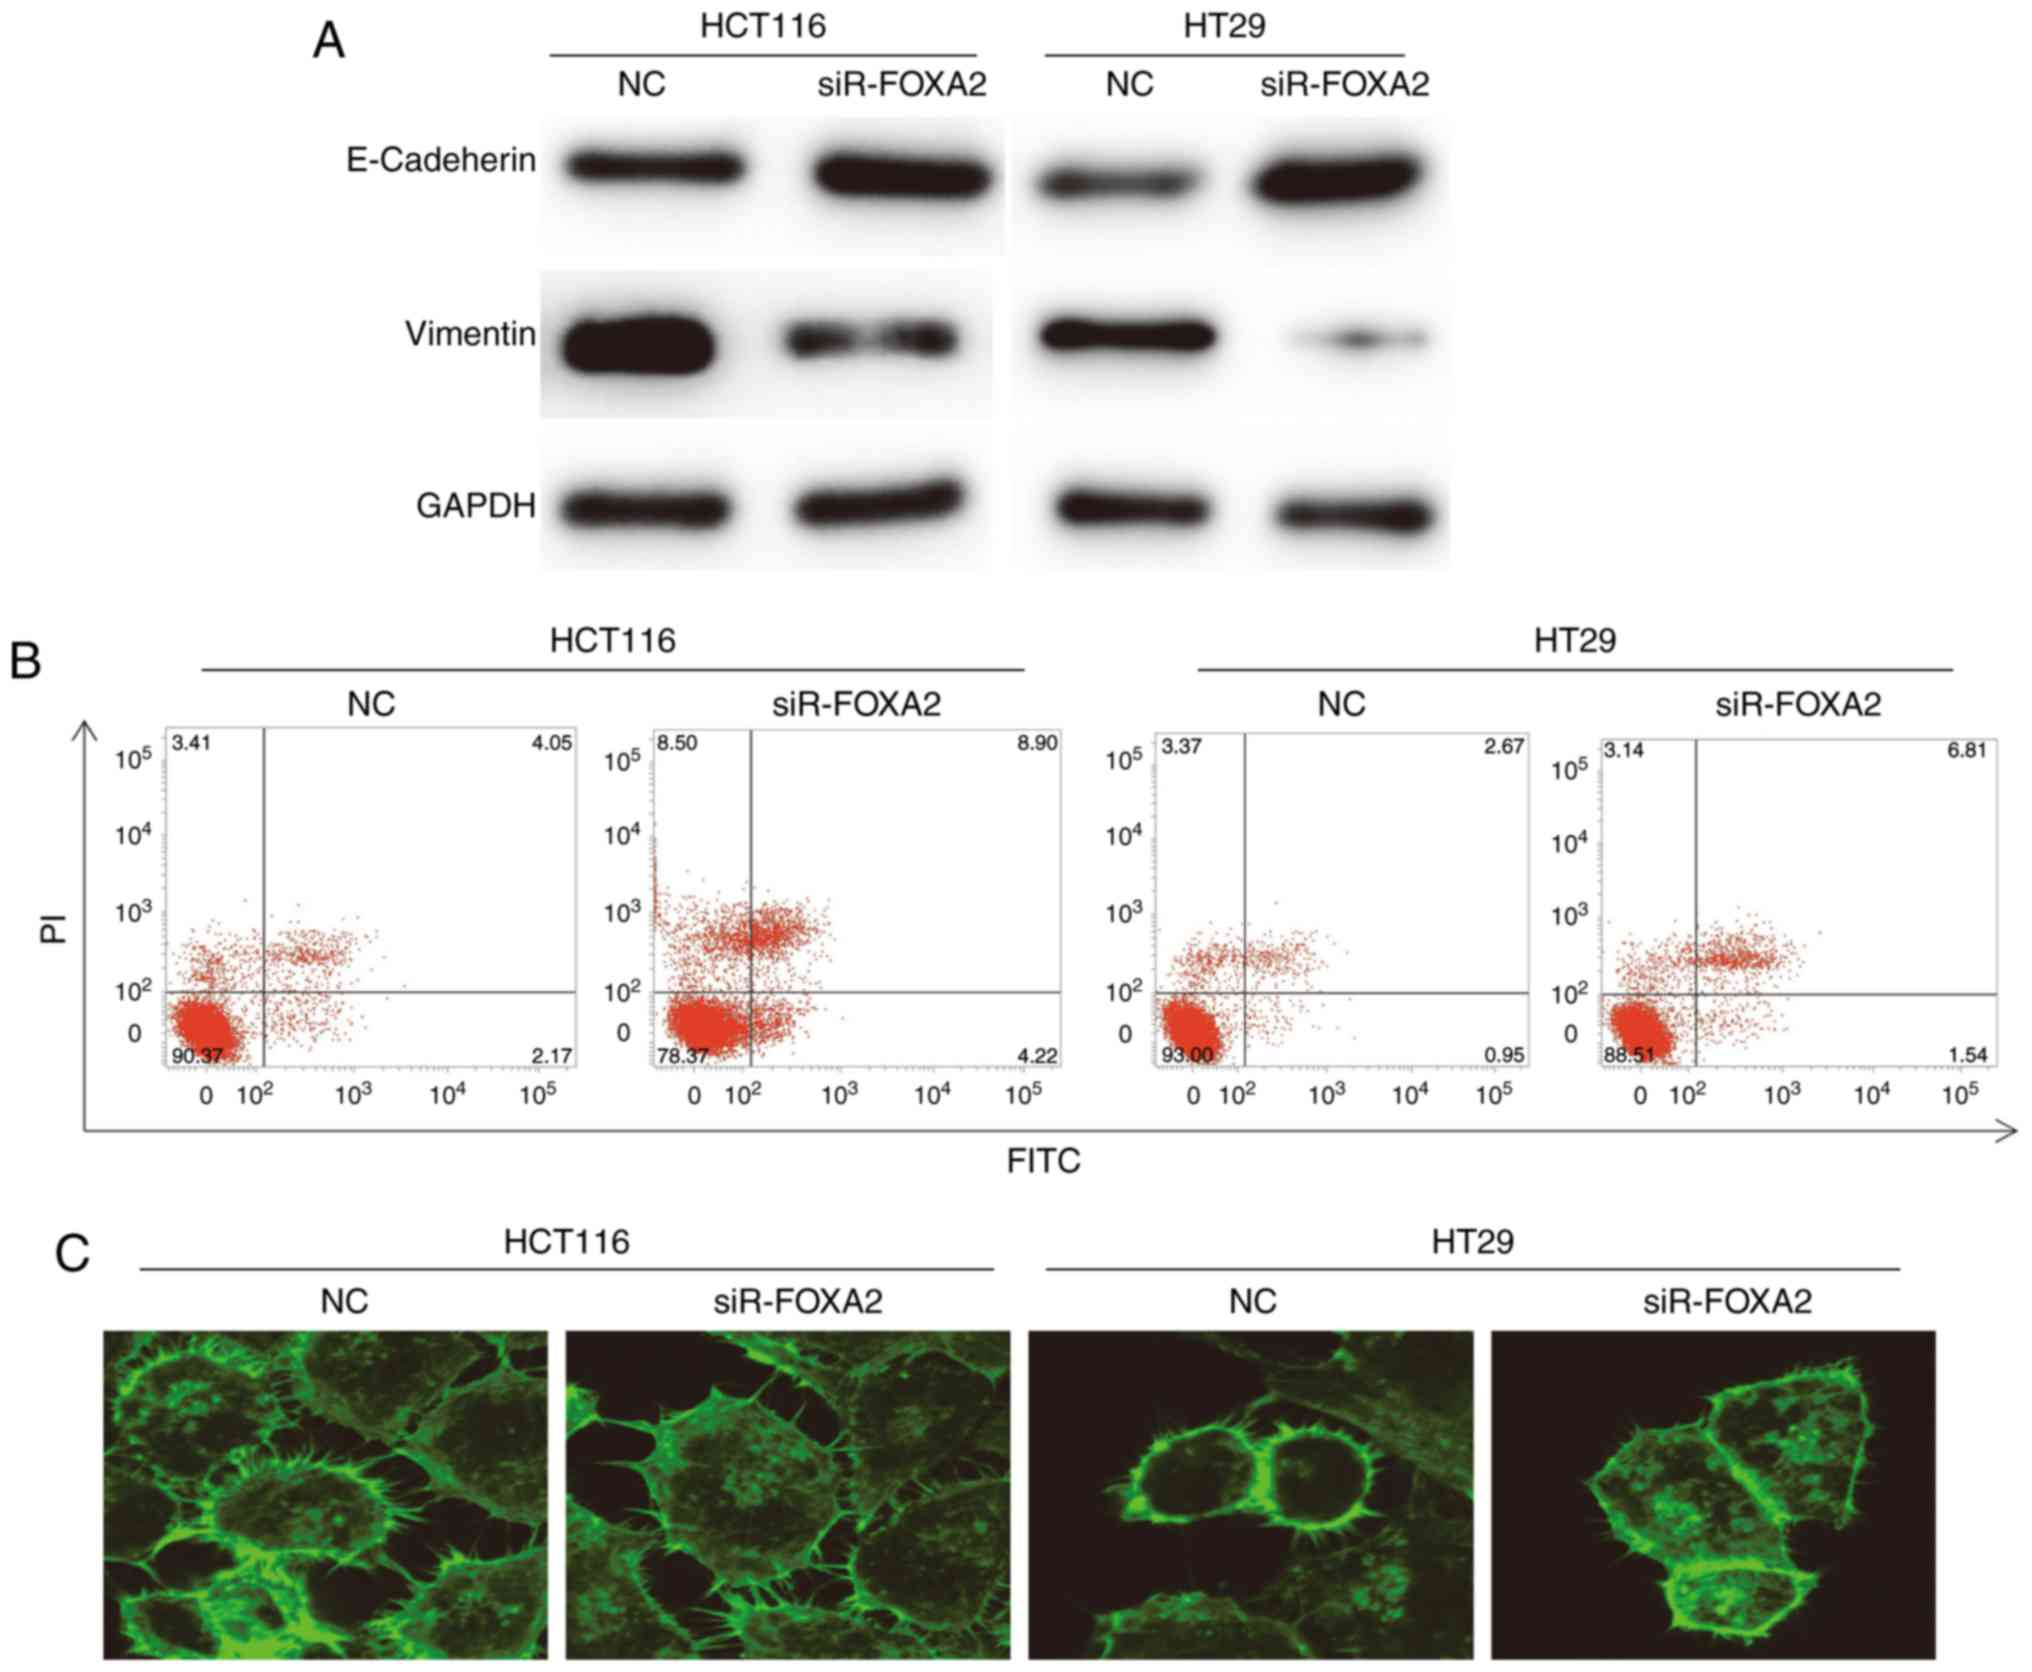 FOXA2 promotes the proliferation, migration and invasion